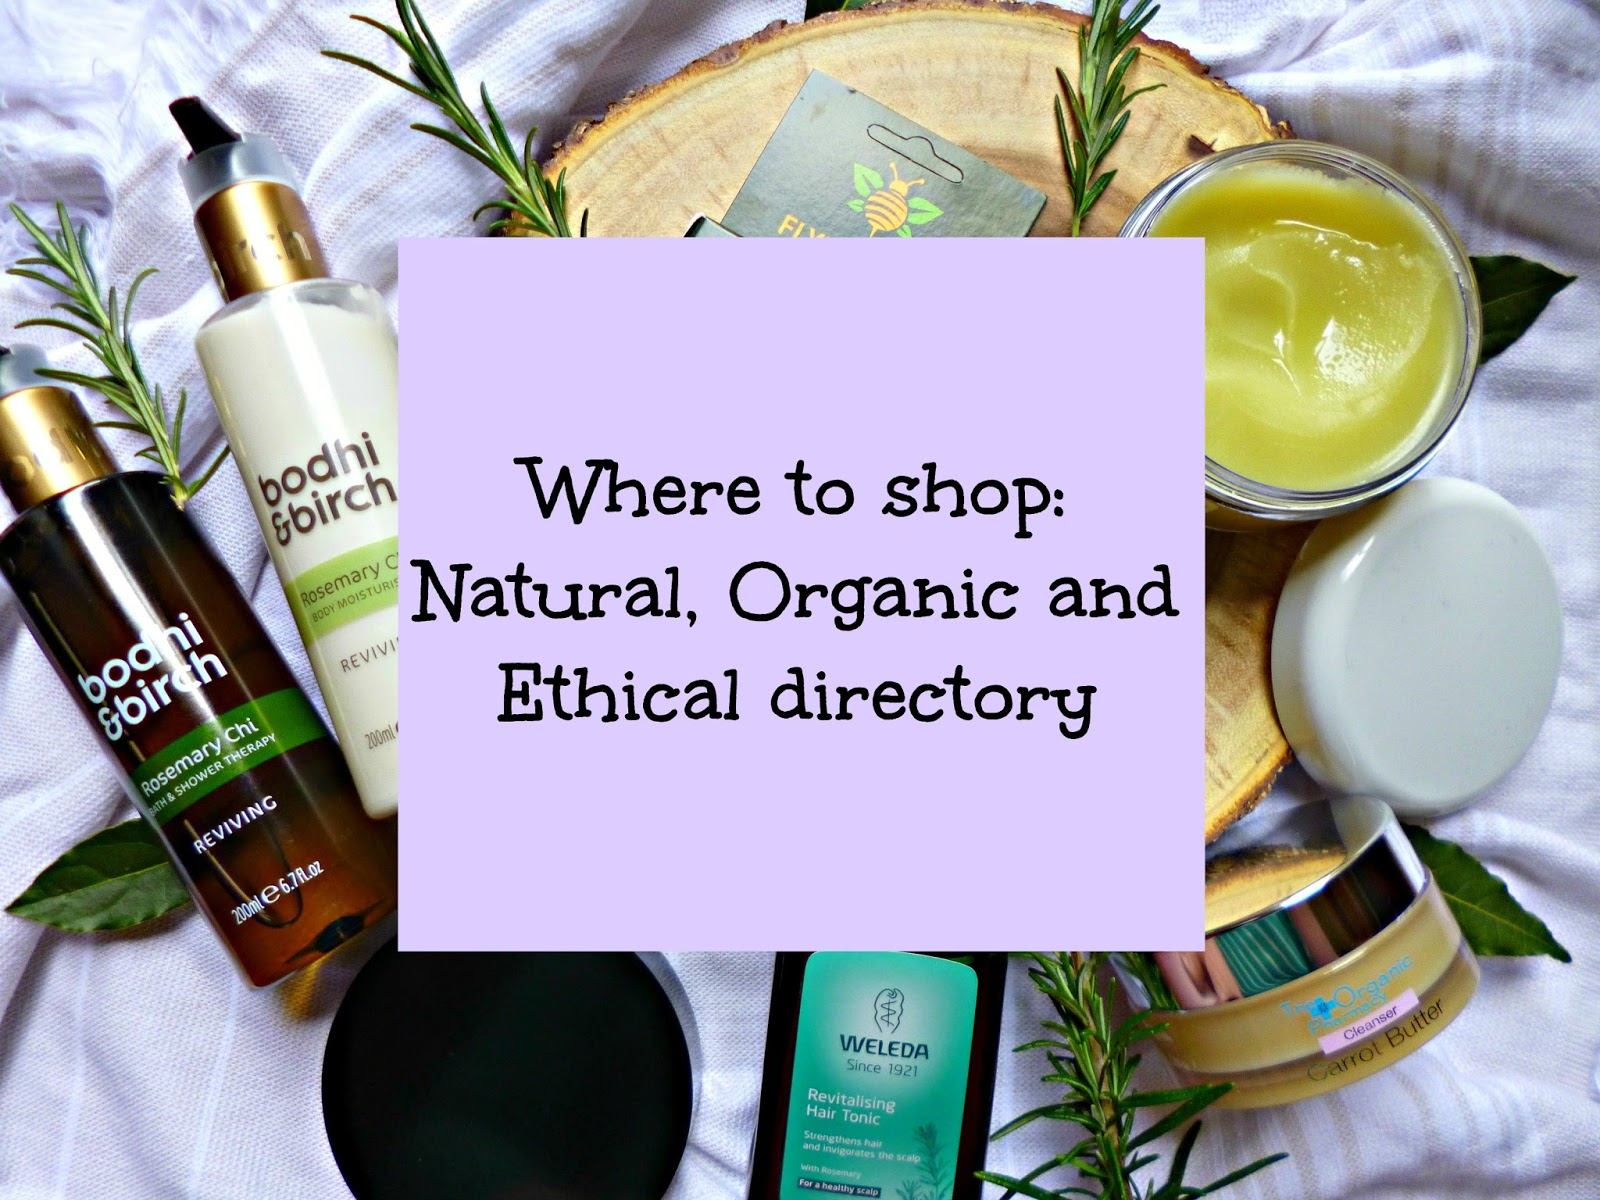 Where to Shop: Natural, Organic and Ethical Directory